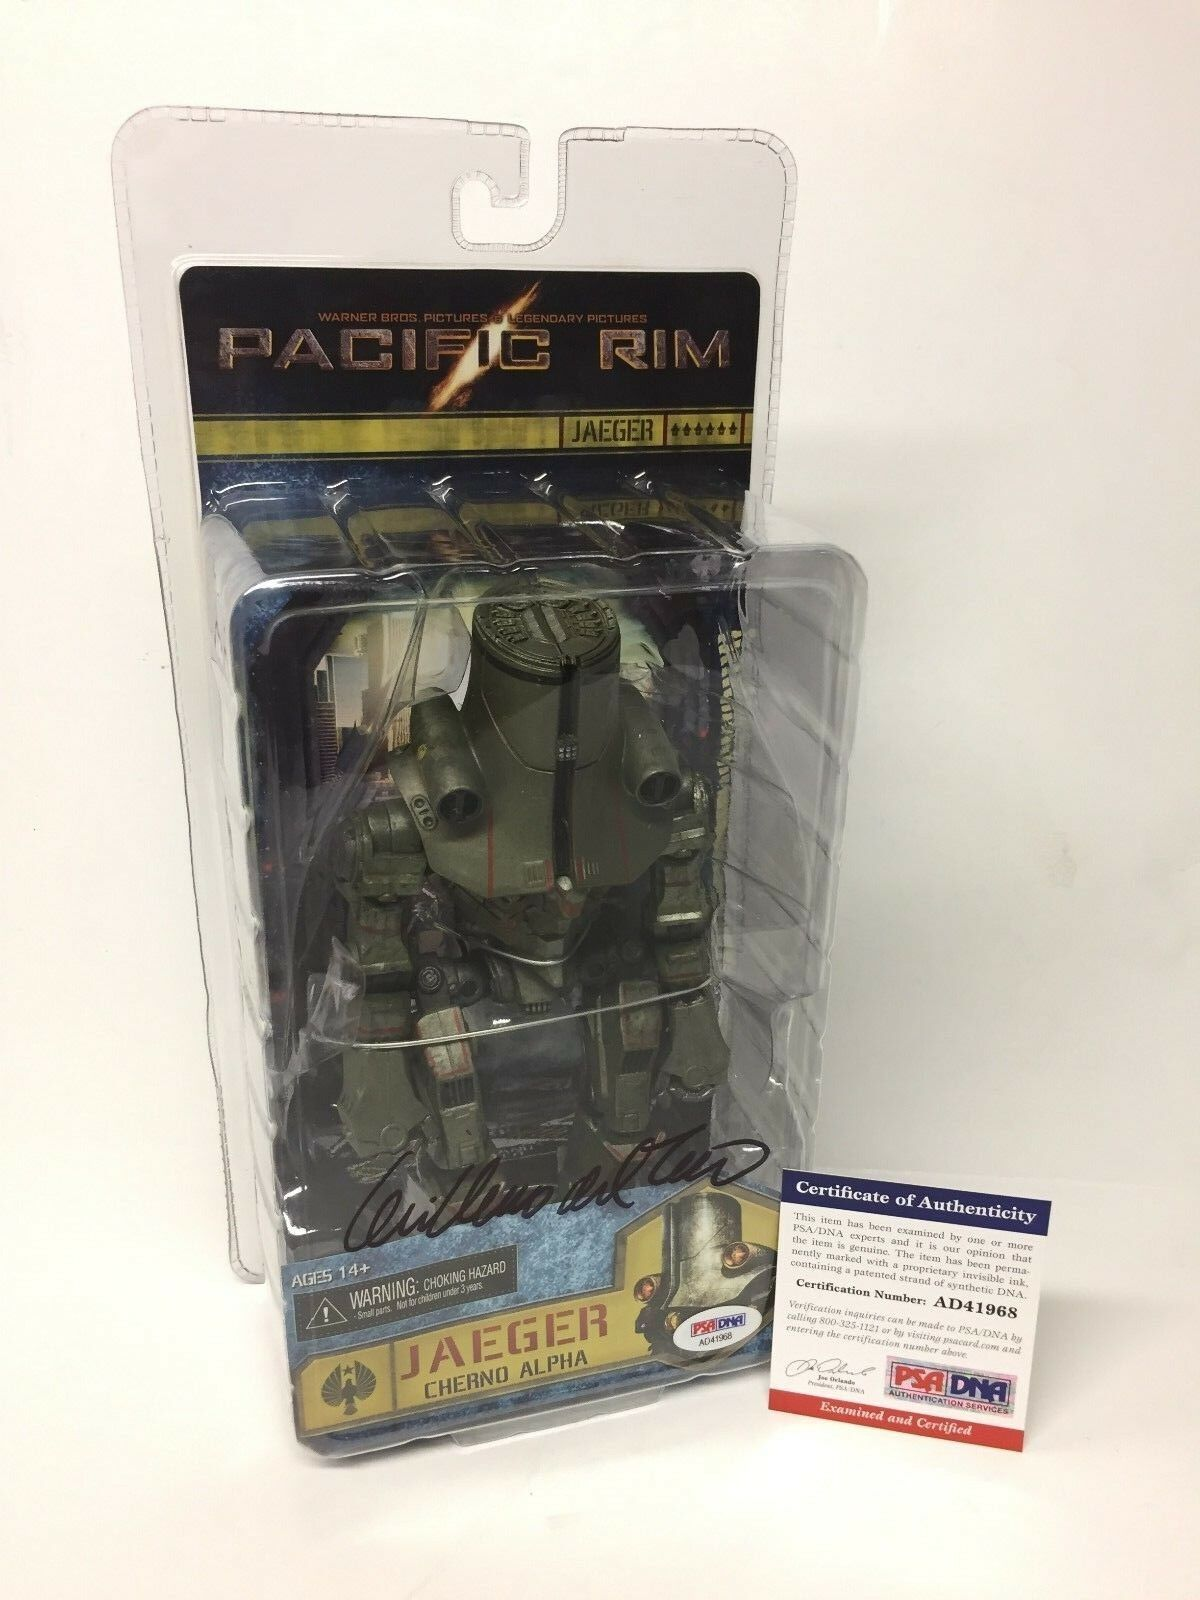 Guillermo Del Toro Signed Pacific Rim Jaeger Cherno Alpha Action Figure PSA